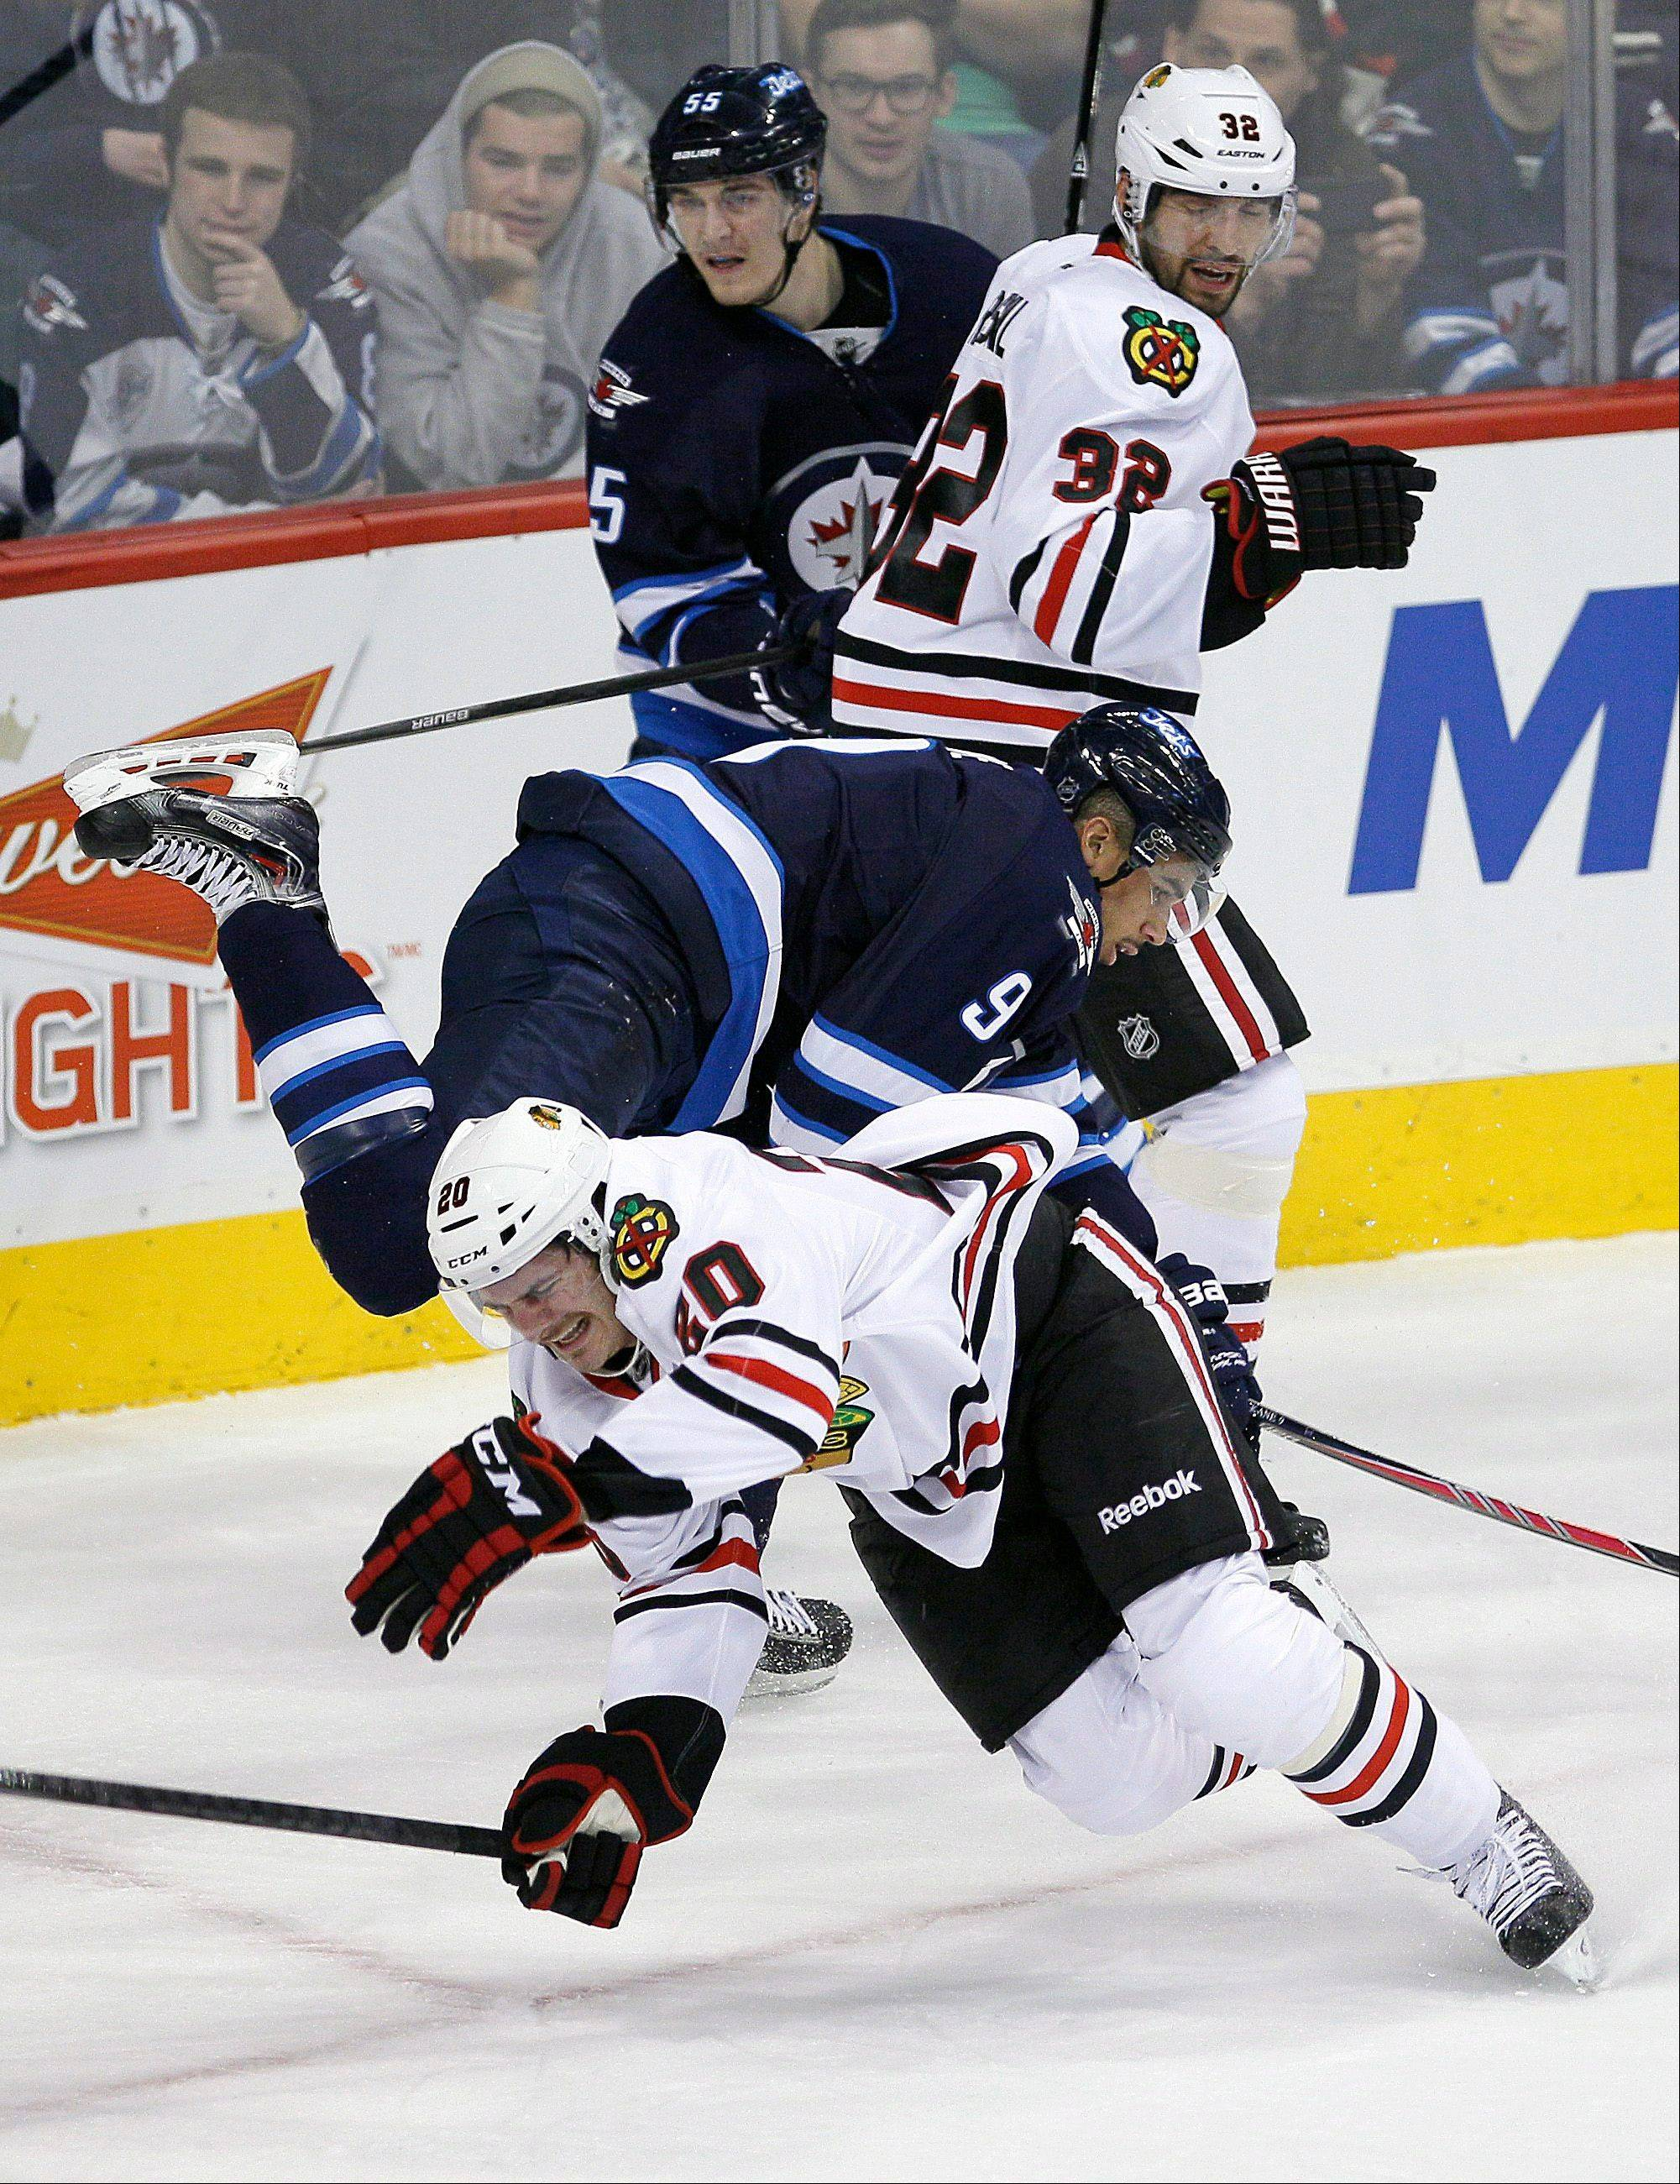 Winnipeg's Evander Kane and Brandon Saad collide as the Jets' Mark Scheifele, back, and the Blackhawks' Michal Rozsival stand by during the first period in Winnipeg, Manitoba on Thursday.